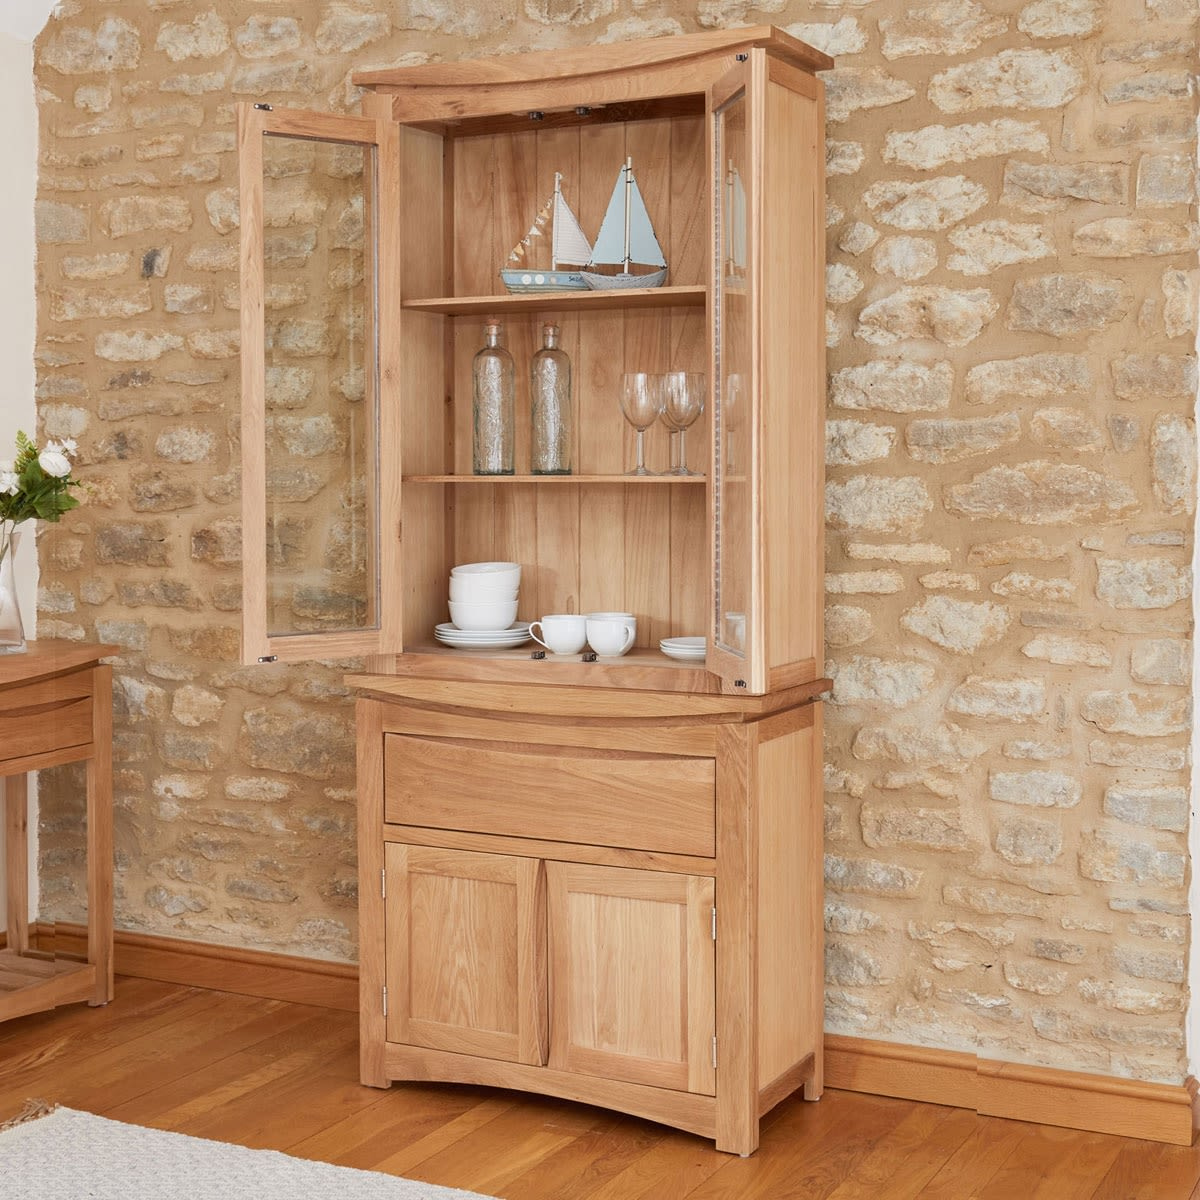 Furniture Store Contemporary: Roscoe Contemporary Oak Glazed Display Cabinet And